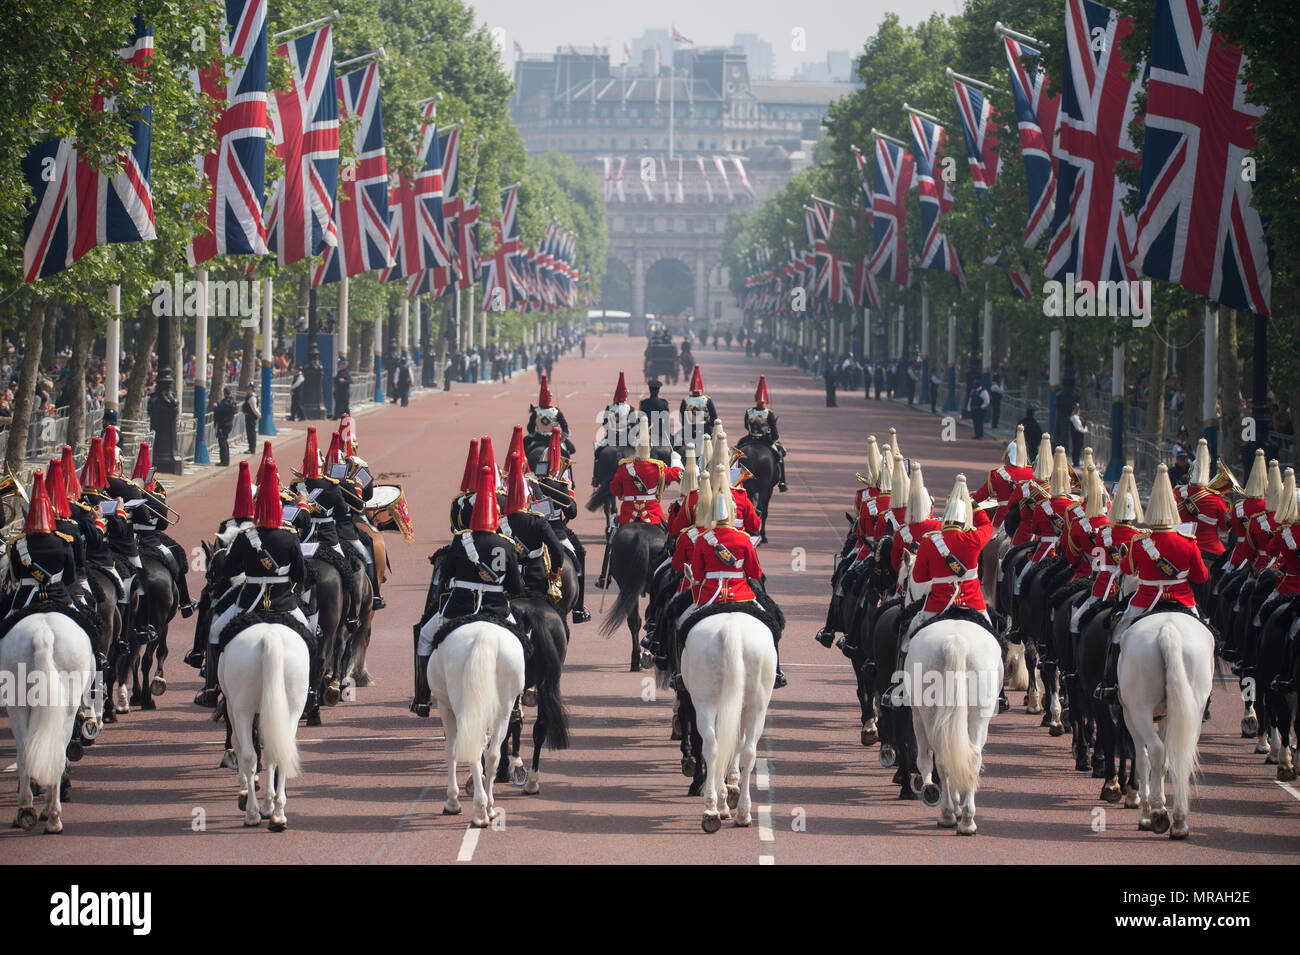 The Mall, London, UK. 26 May, 2018. Major General's Review is held in sweltering heat, the penultimate rehearsal for the Queen's Birthday Parade, also known as Trooping the Colour. 1400 soldiers from the Household Division and the King's Troop Royal Horse Artillery take part in this full scale rehearsal. Credit: Malcolm Park/Alamy Live News. Stock Photo